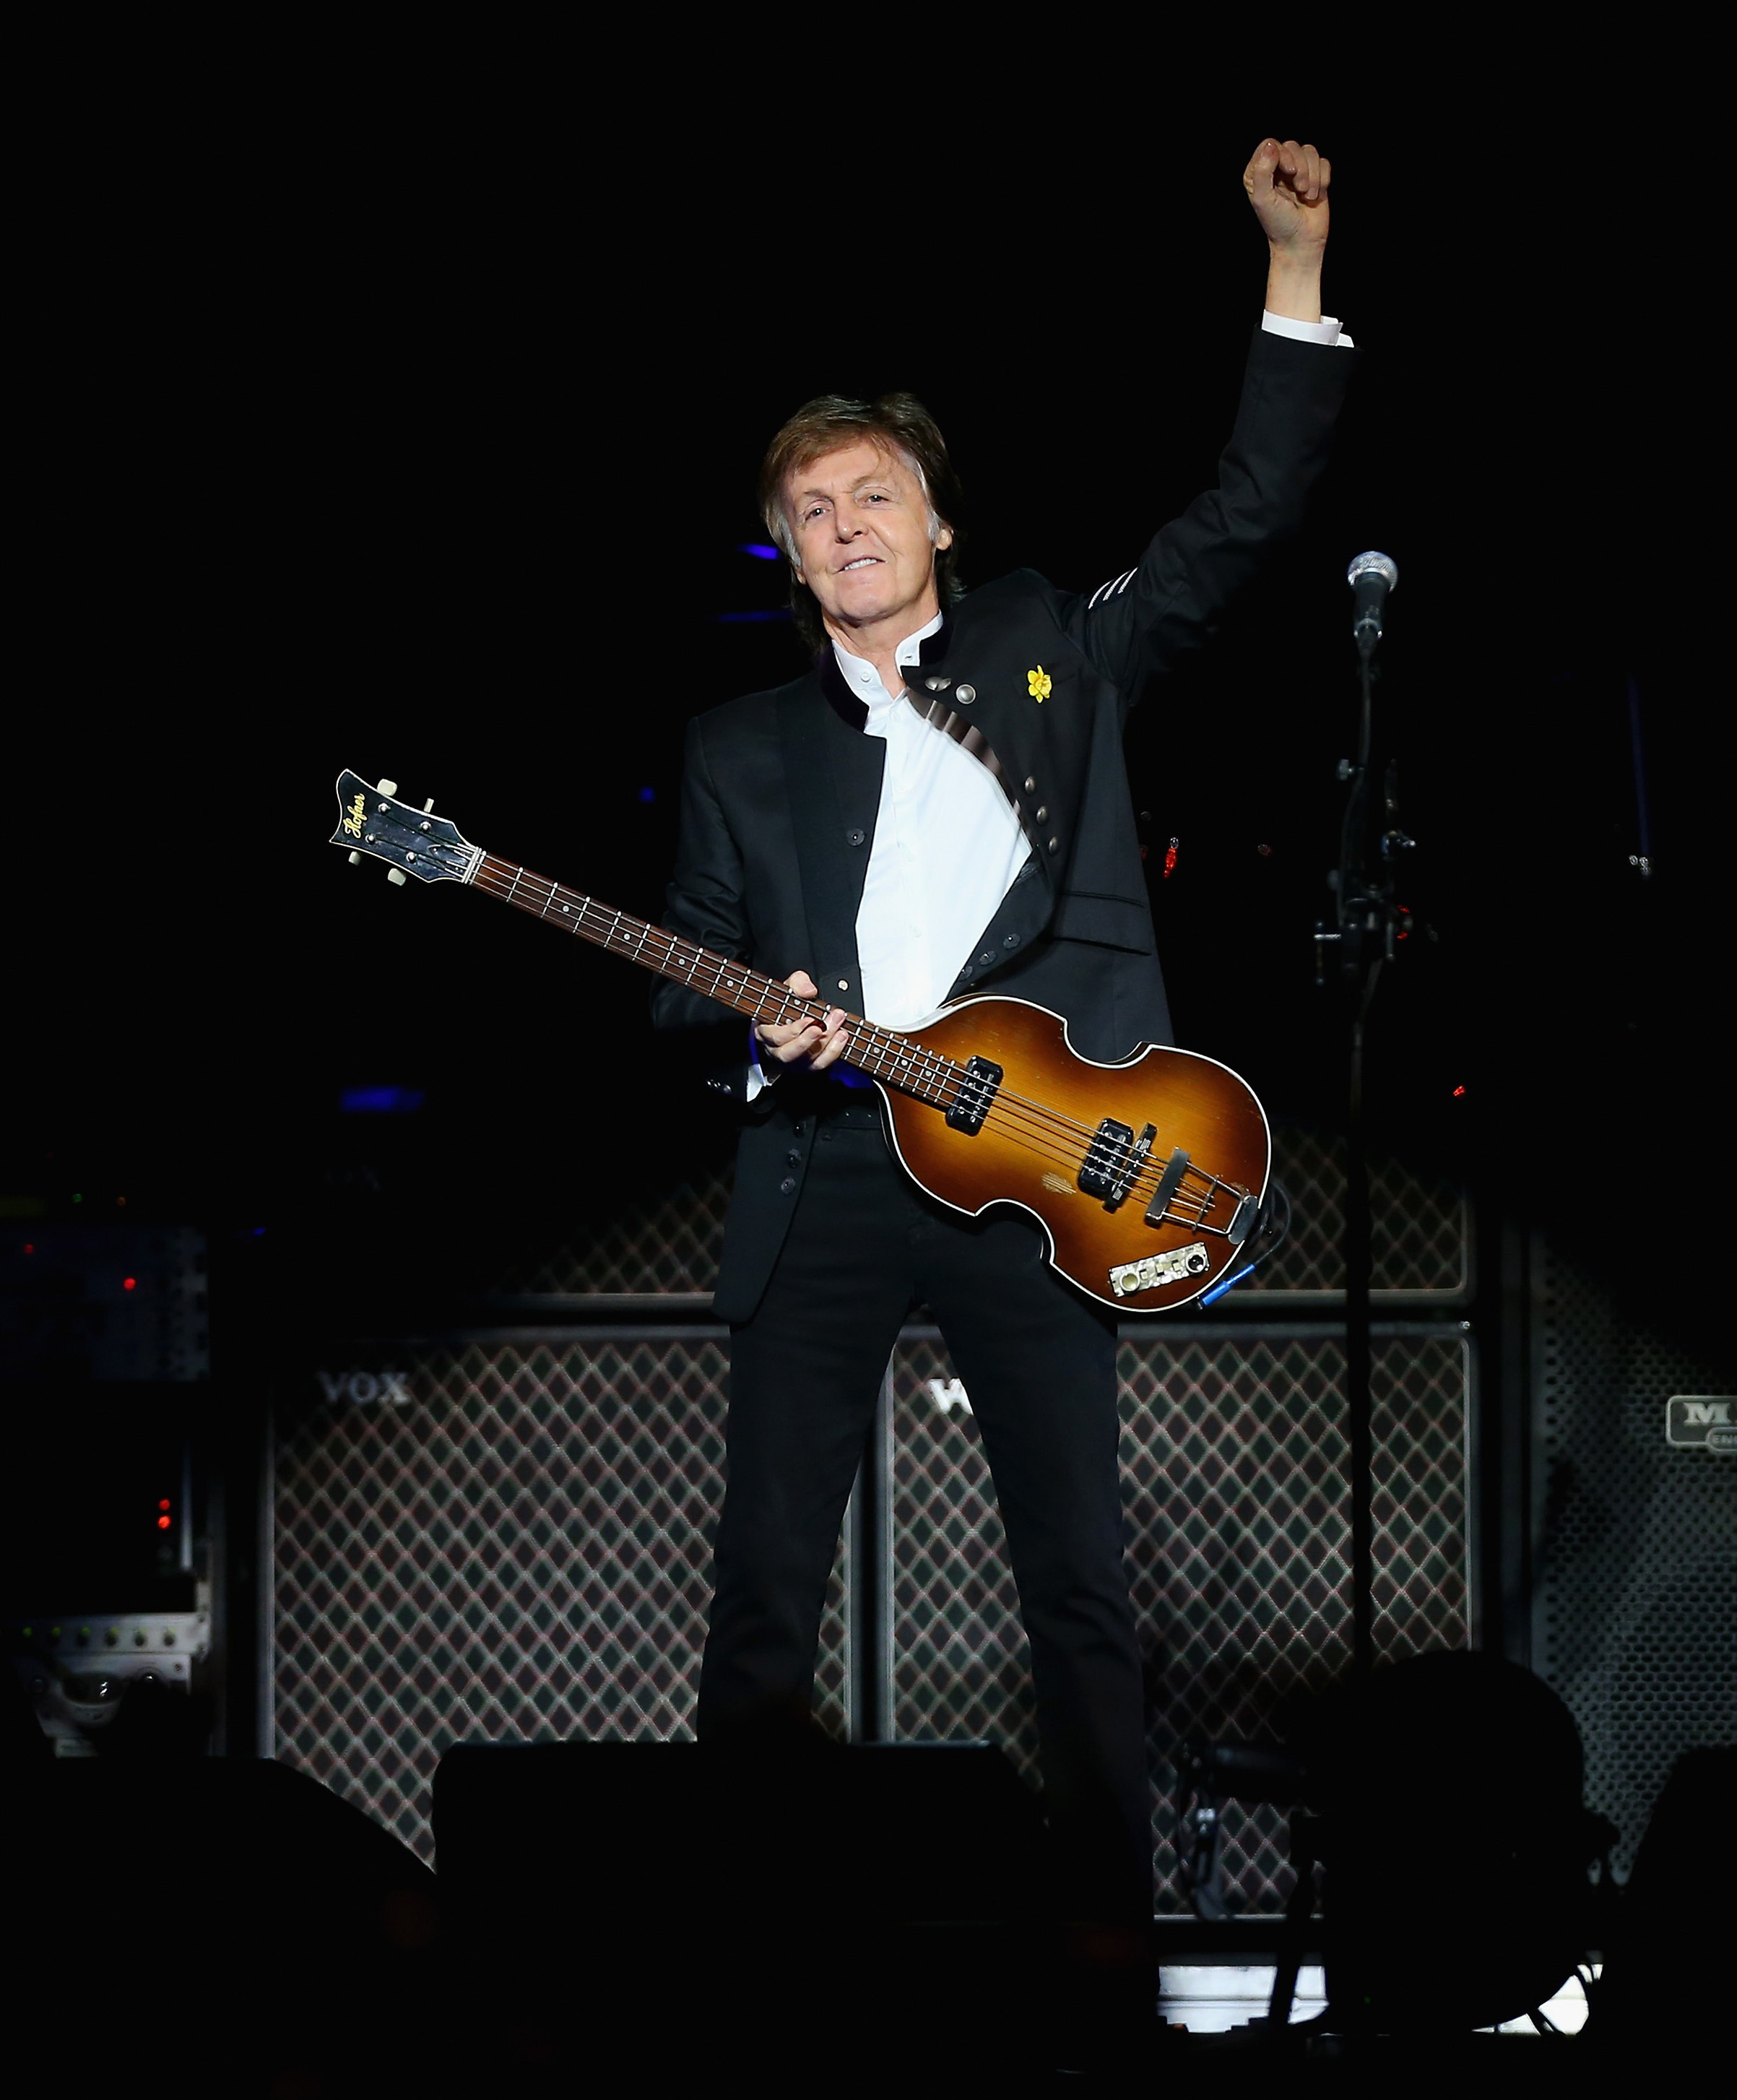 SYDNEY, AUSTRALIA - DECEMBER 11:  Paul McCartney performs at Qudos Bank Arena on December 11, 2017 in Sydney, Australia.  (Photo by Don Arnold/WireImage)